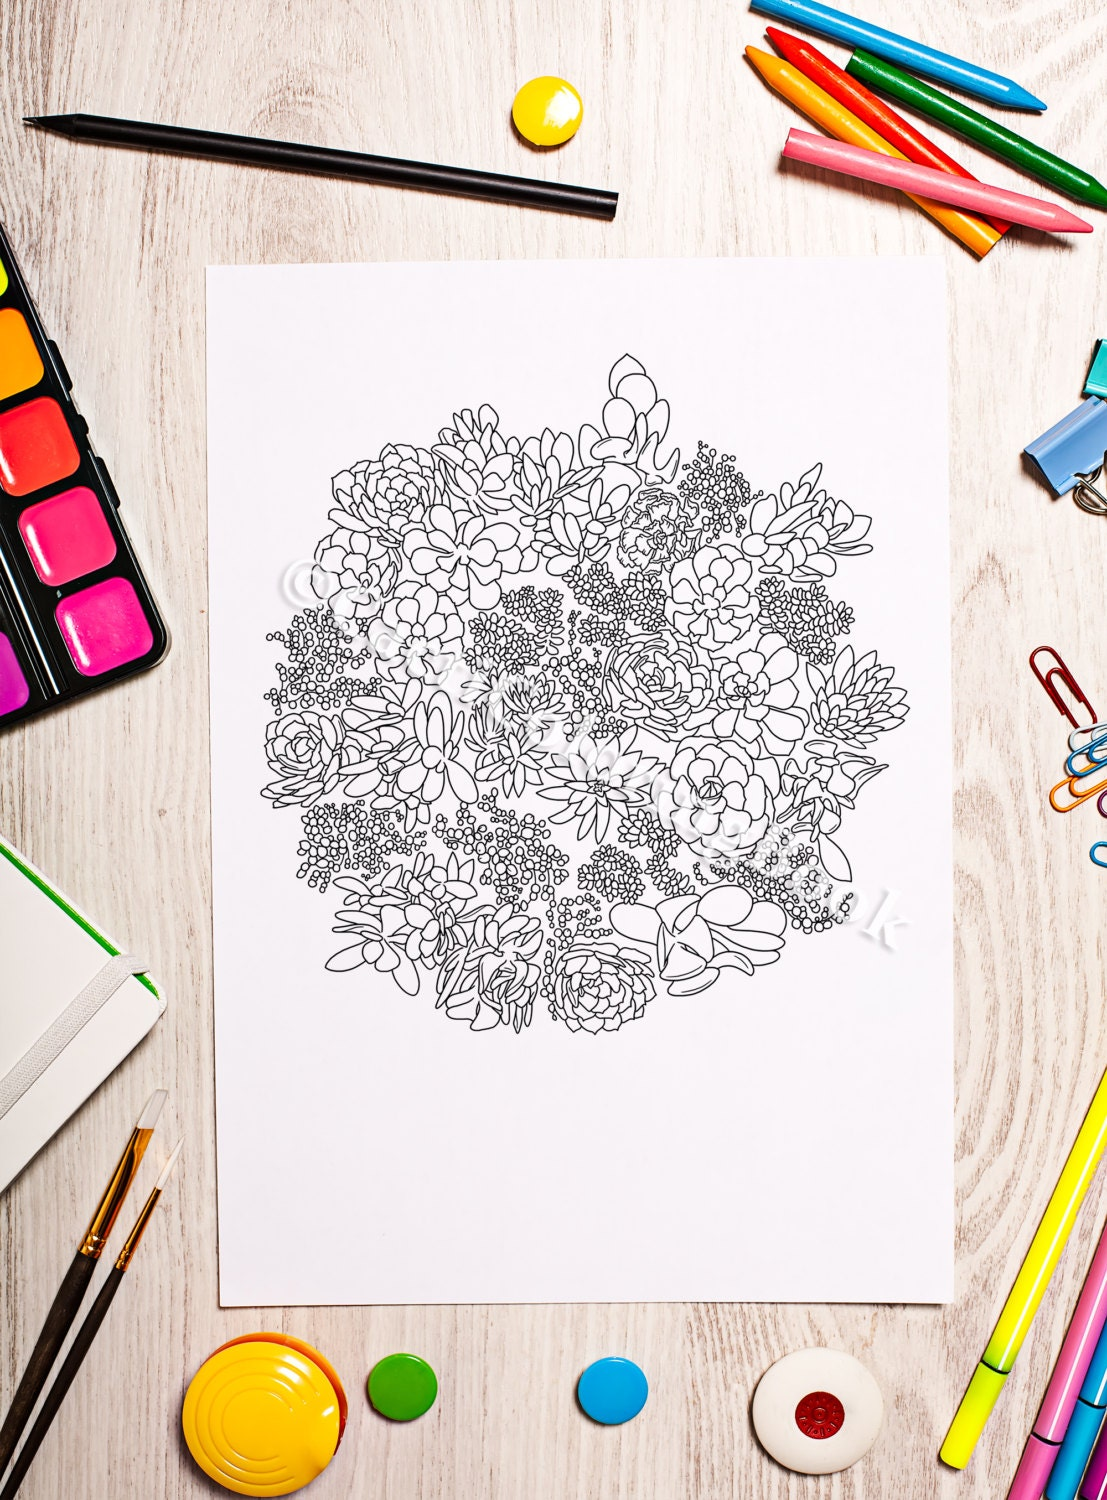 The sneaker coloring book pdf - Succulent Plant Garden Coloring Page Digital Download Pdf